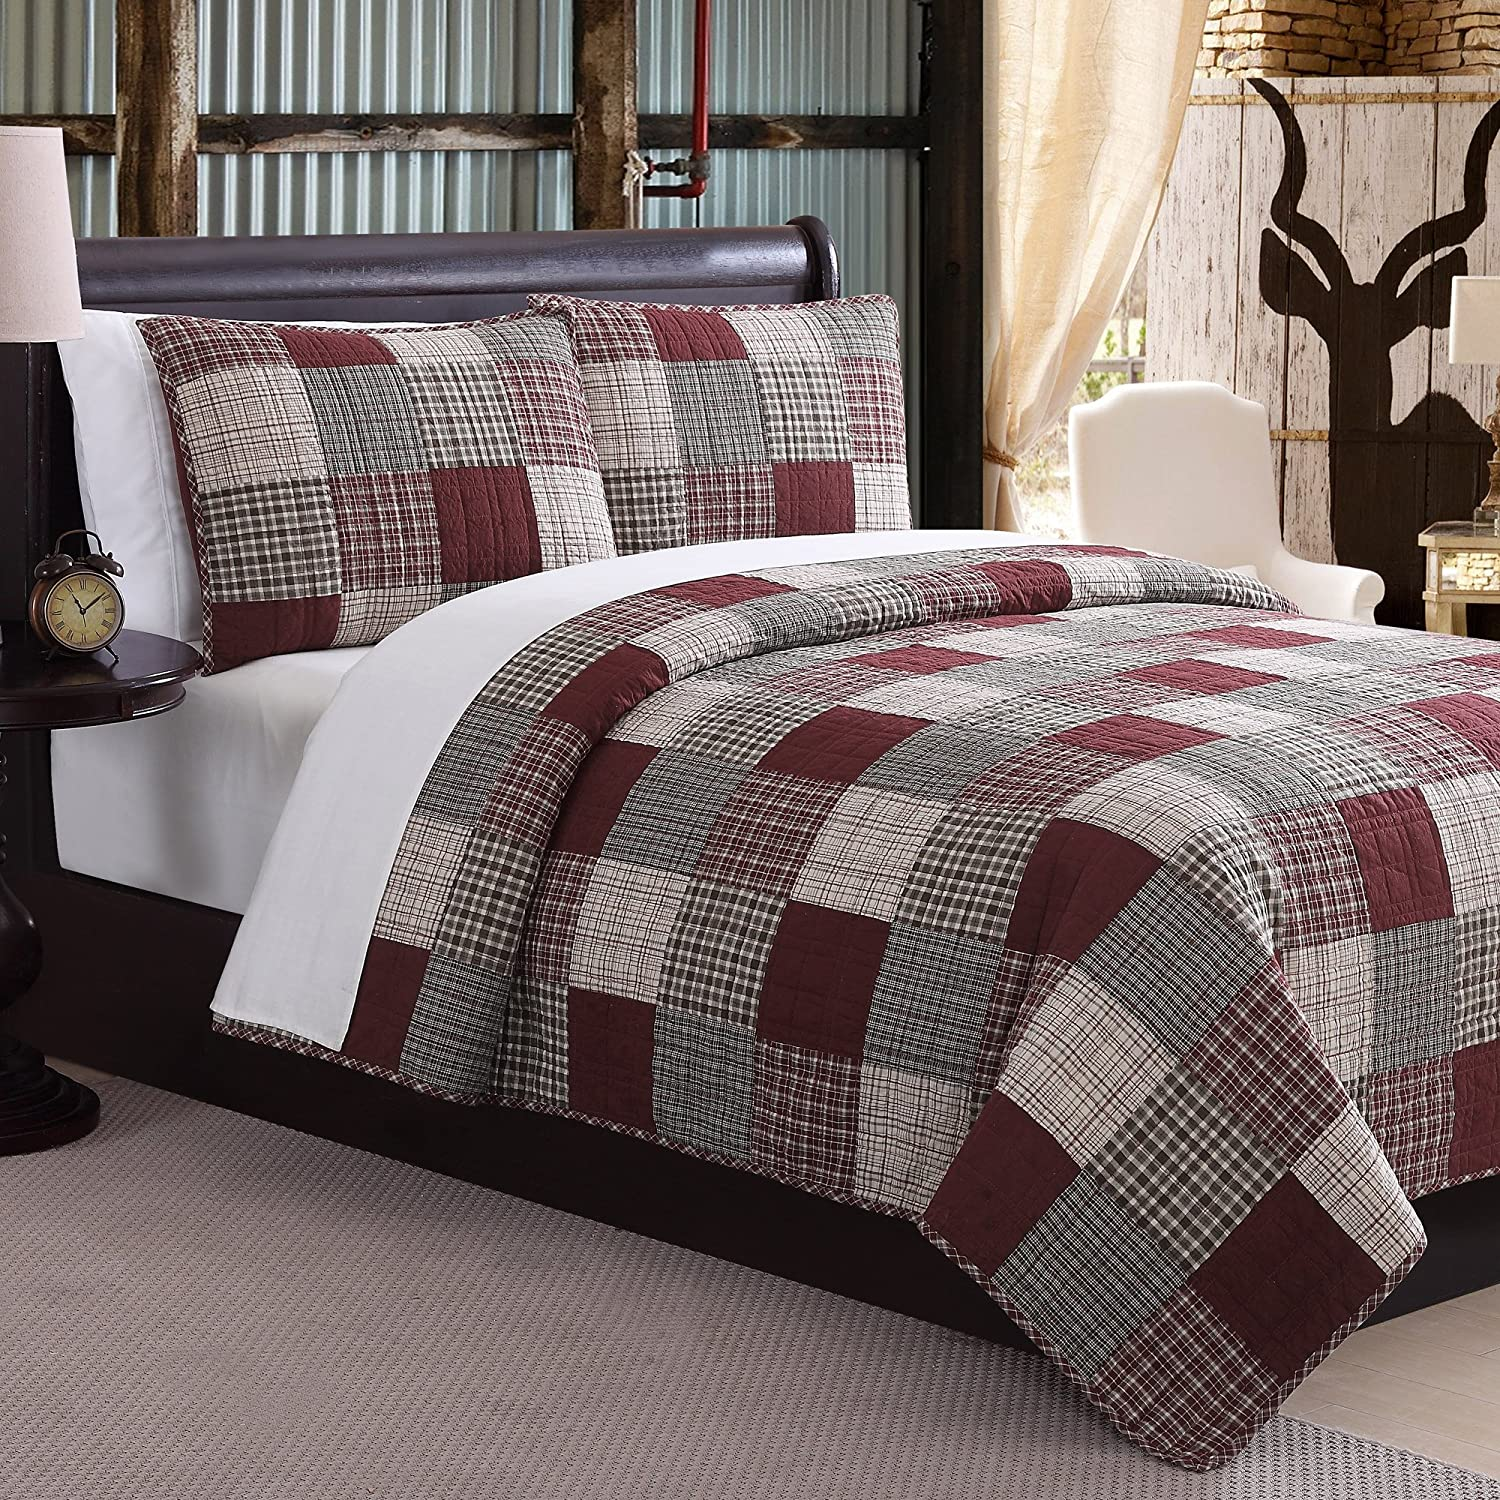 2 Piece Red Grey Plaid Patchwork Pattern Quilt Twin Set, Beautiful Classical Square Block Tartan, Gingham, Madras Checkered Design Print, Soft Cozy & Comfy Bedding, Cotton, Polyester